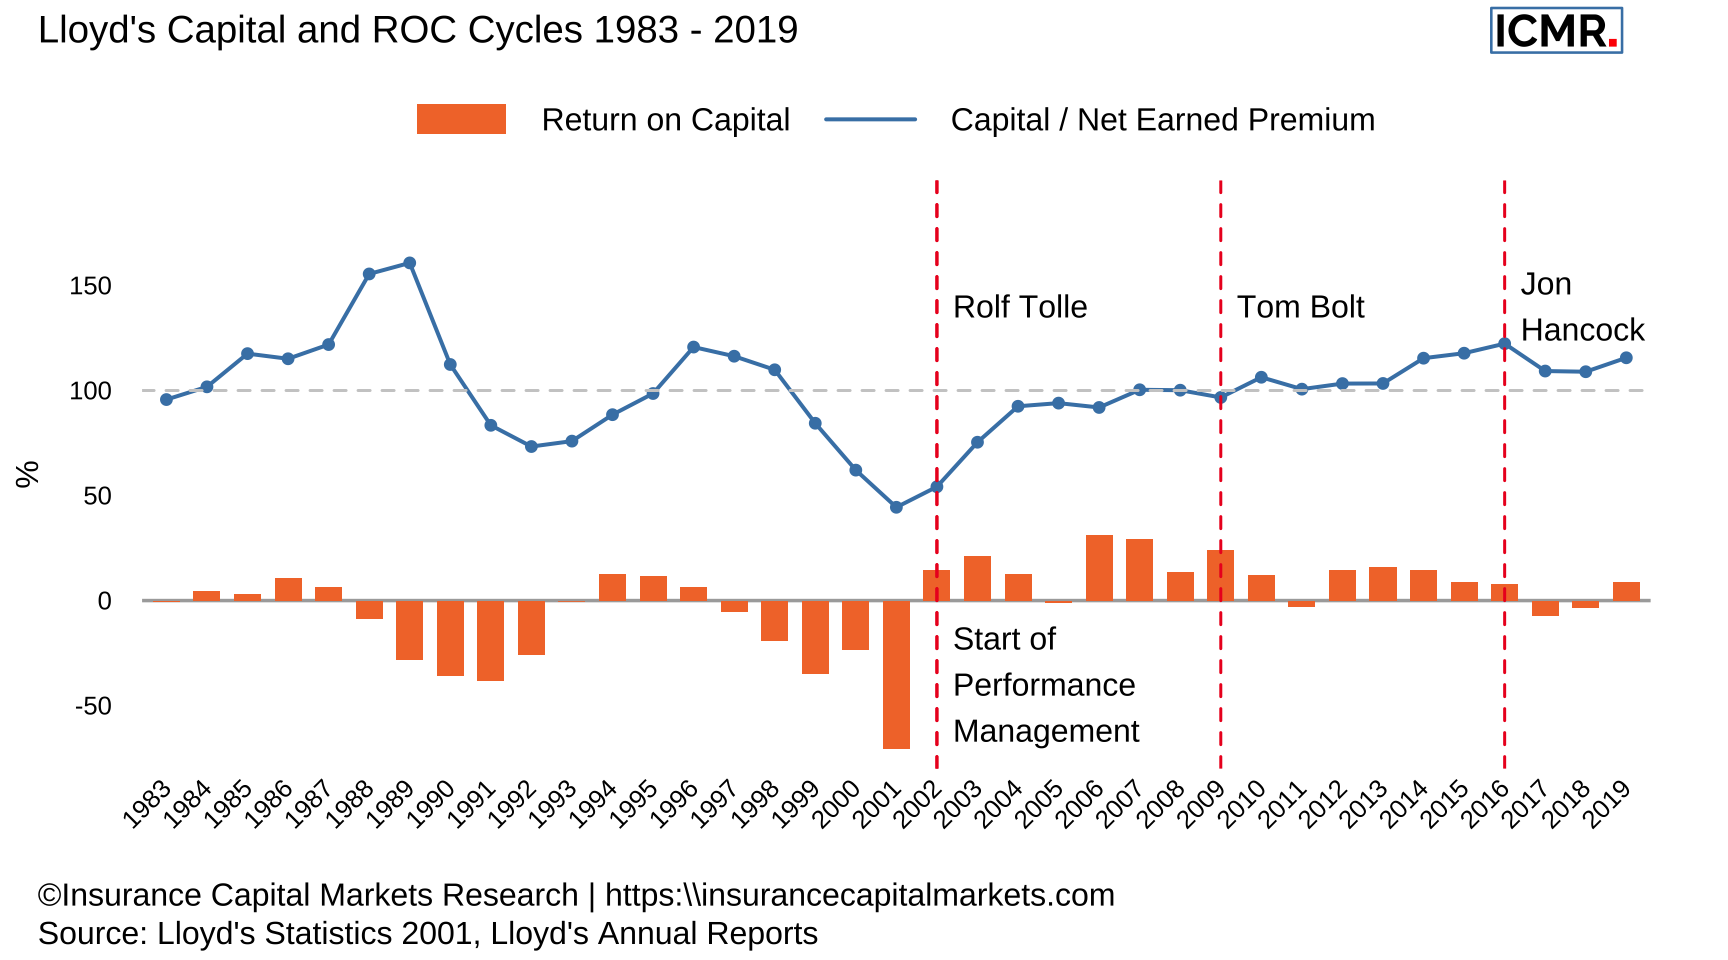 Lloyd's Capital and ROC Cycles 1983 - 2019